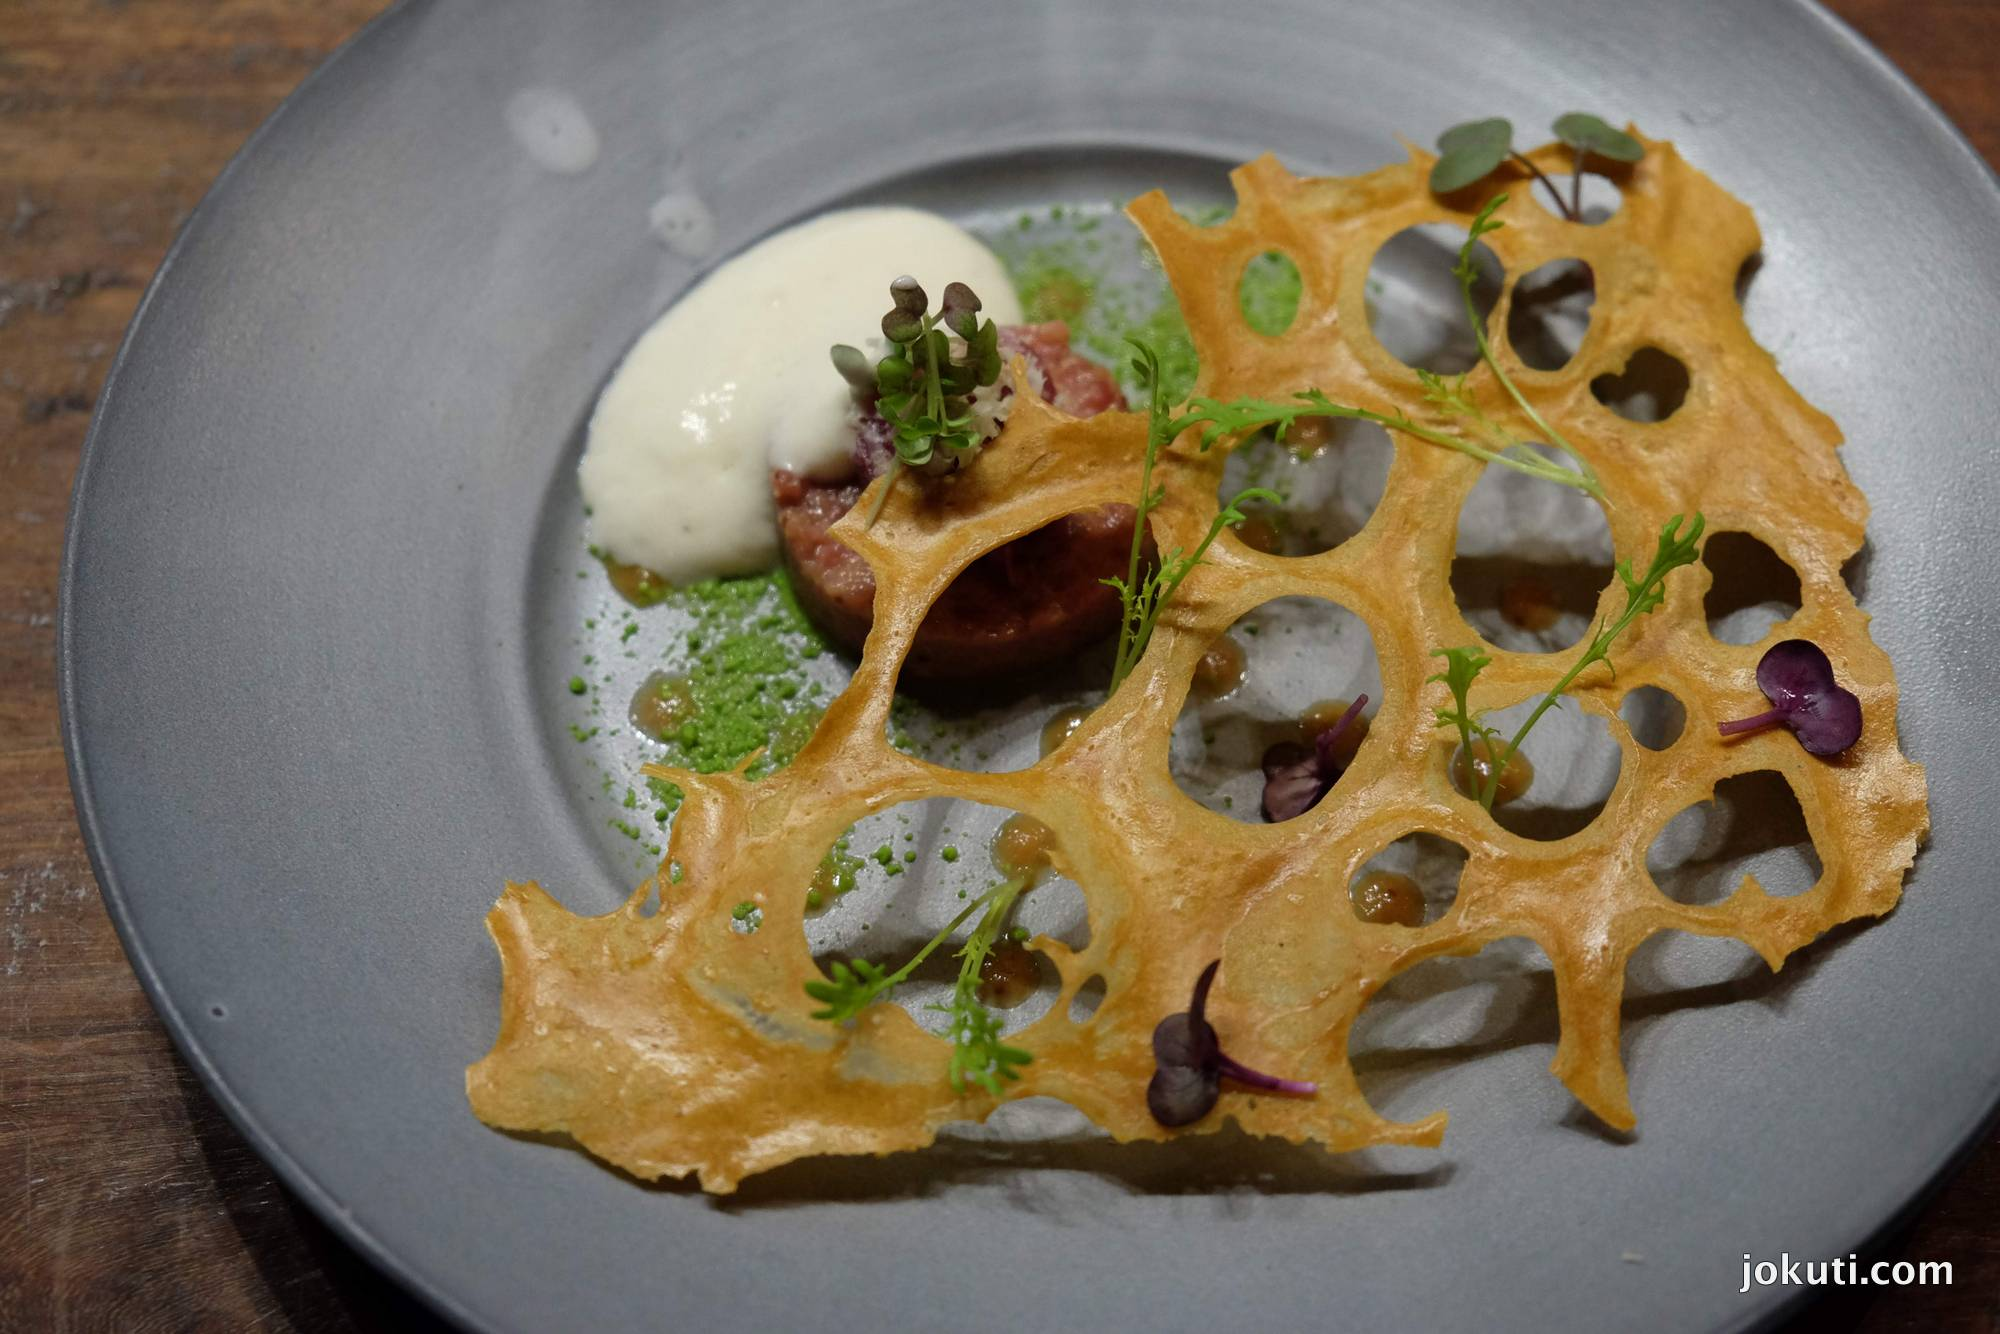 dscf3961_test_kitchen_cape_town_south_africa_restaurant_fine_dining_vilagevo_jokuti.jpg